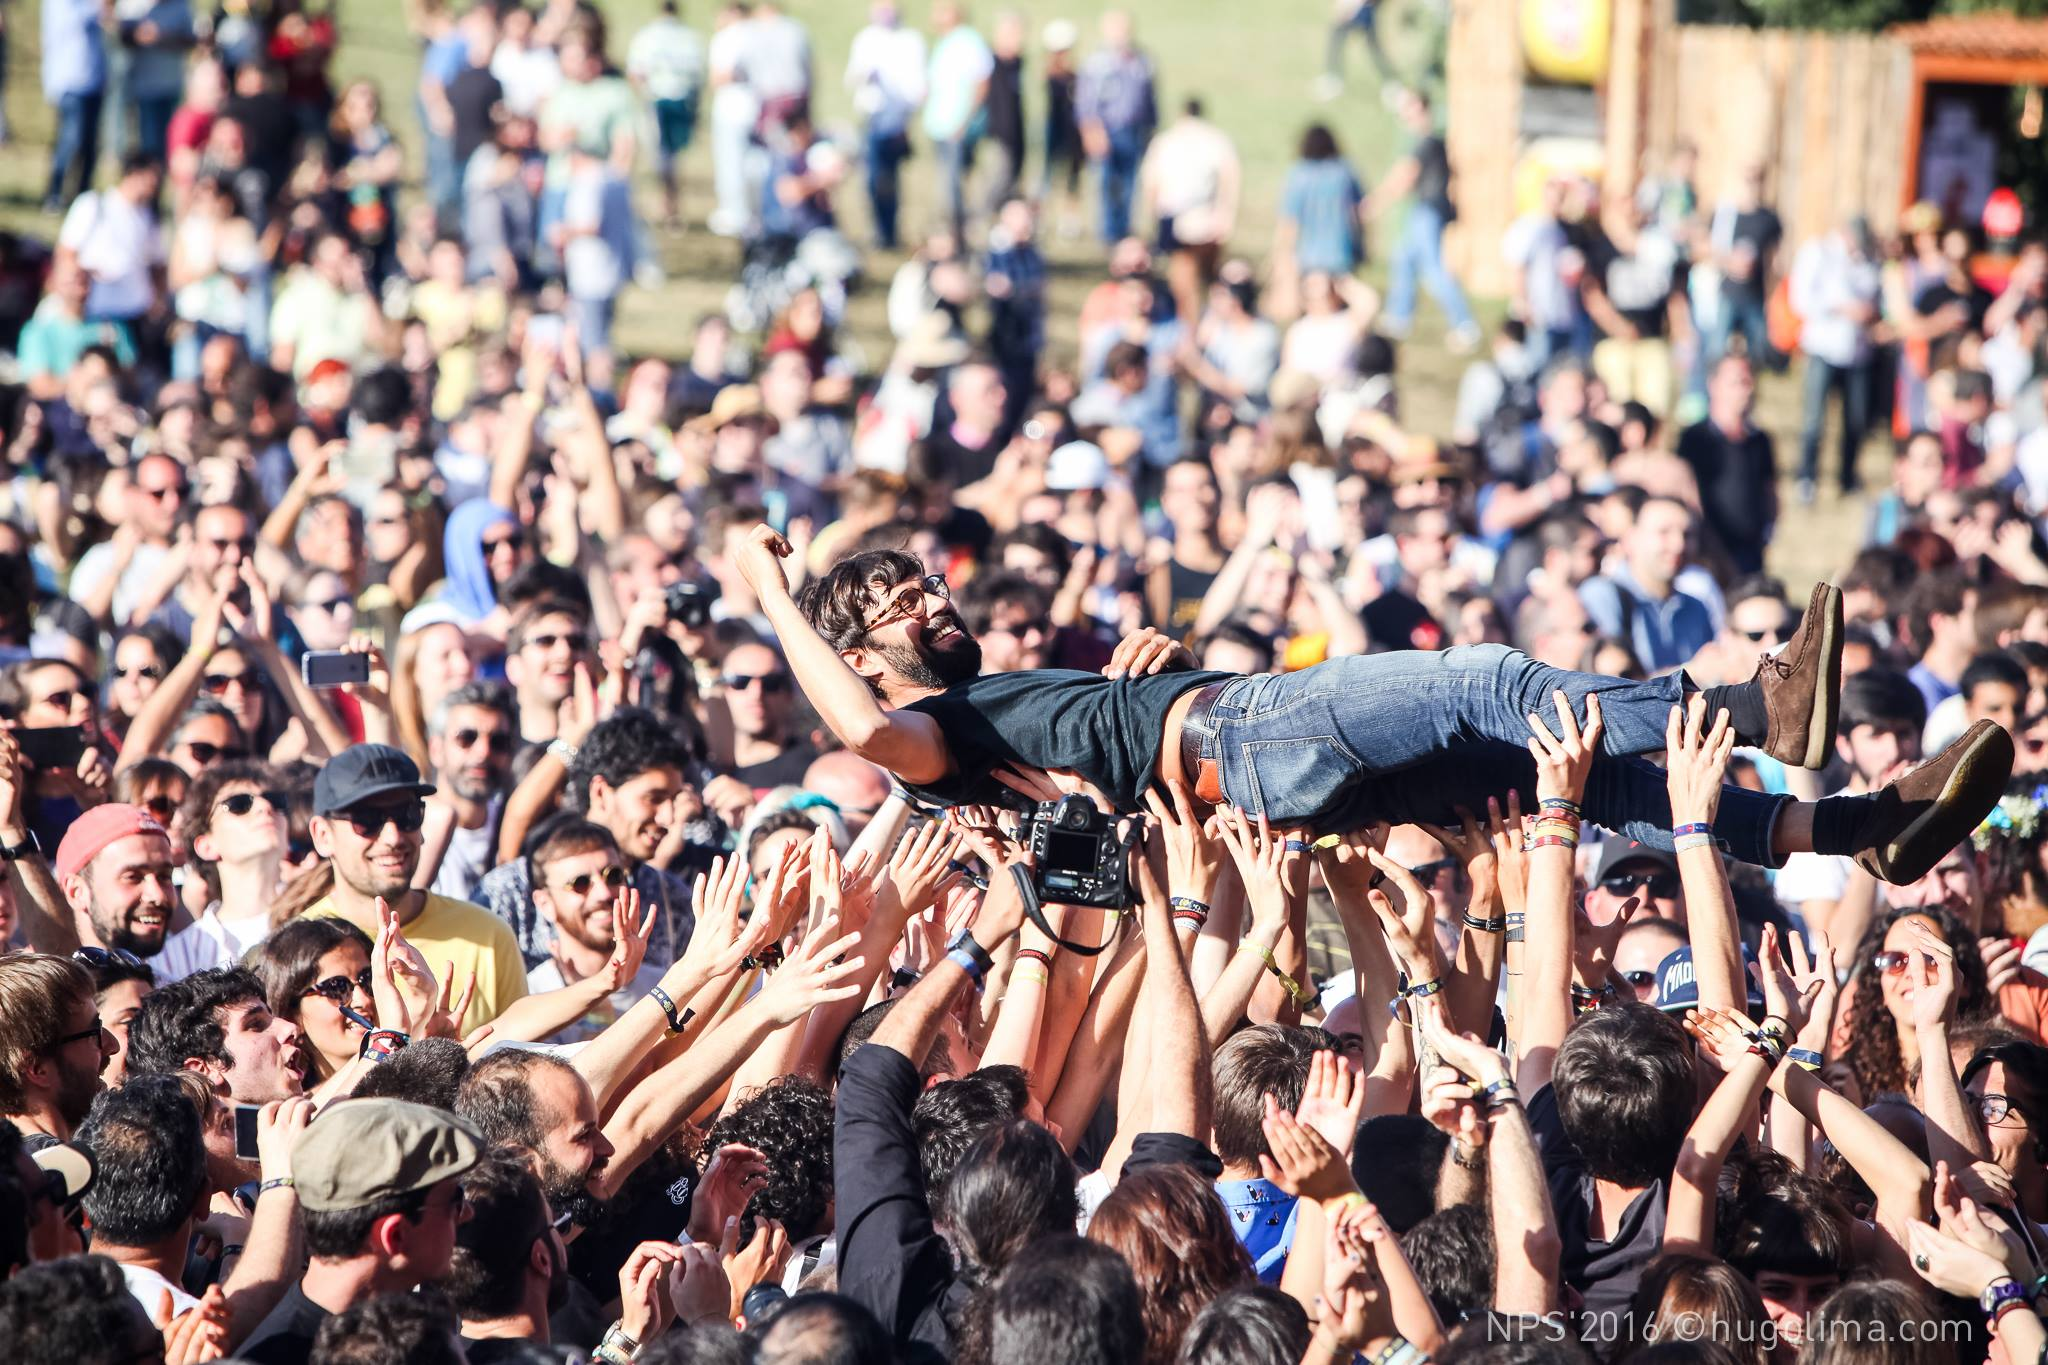 NOS Primavera crowd surfing